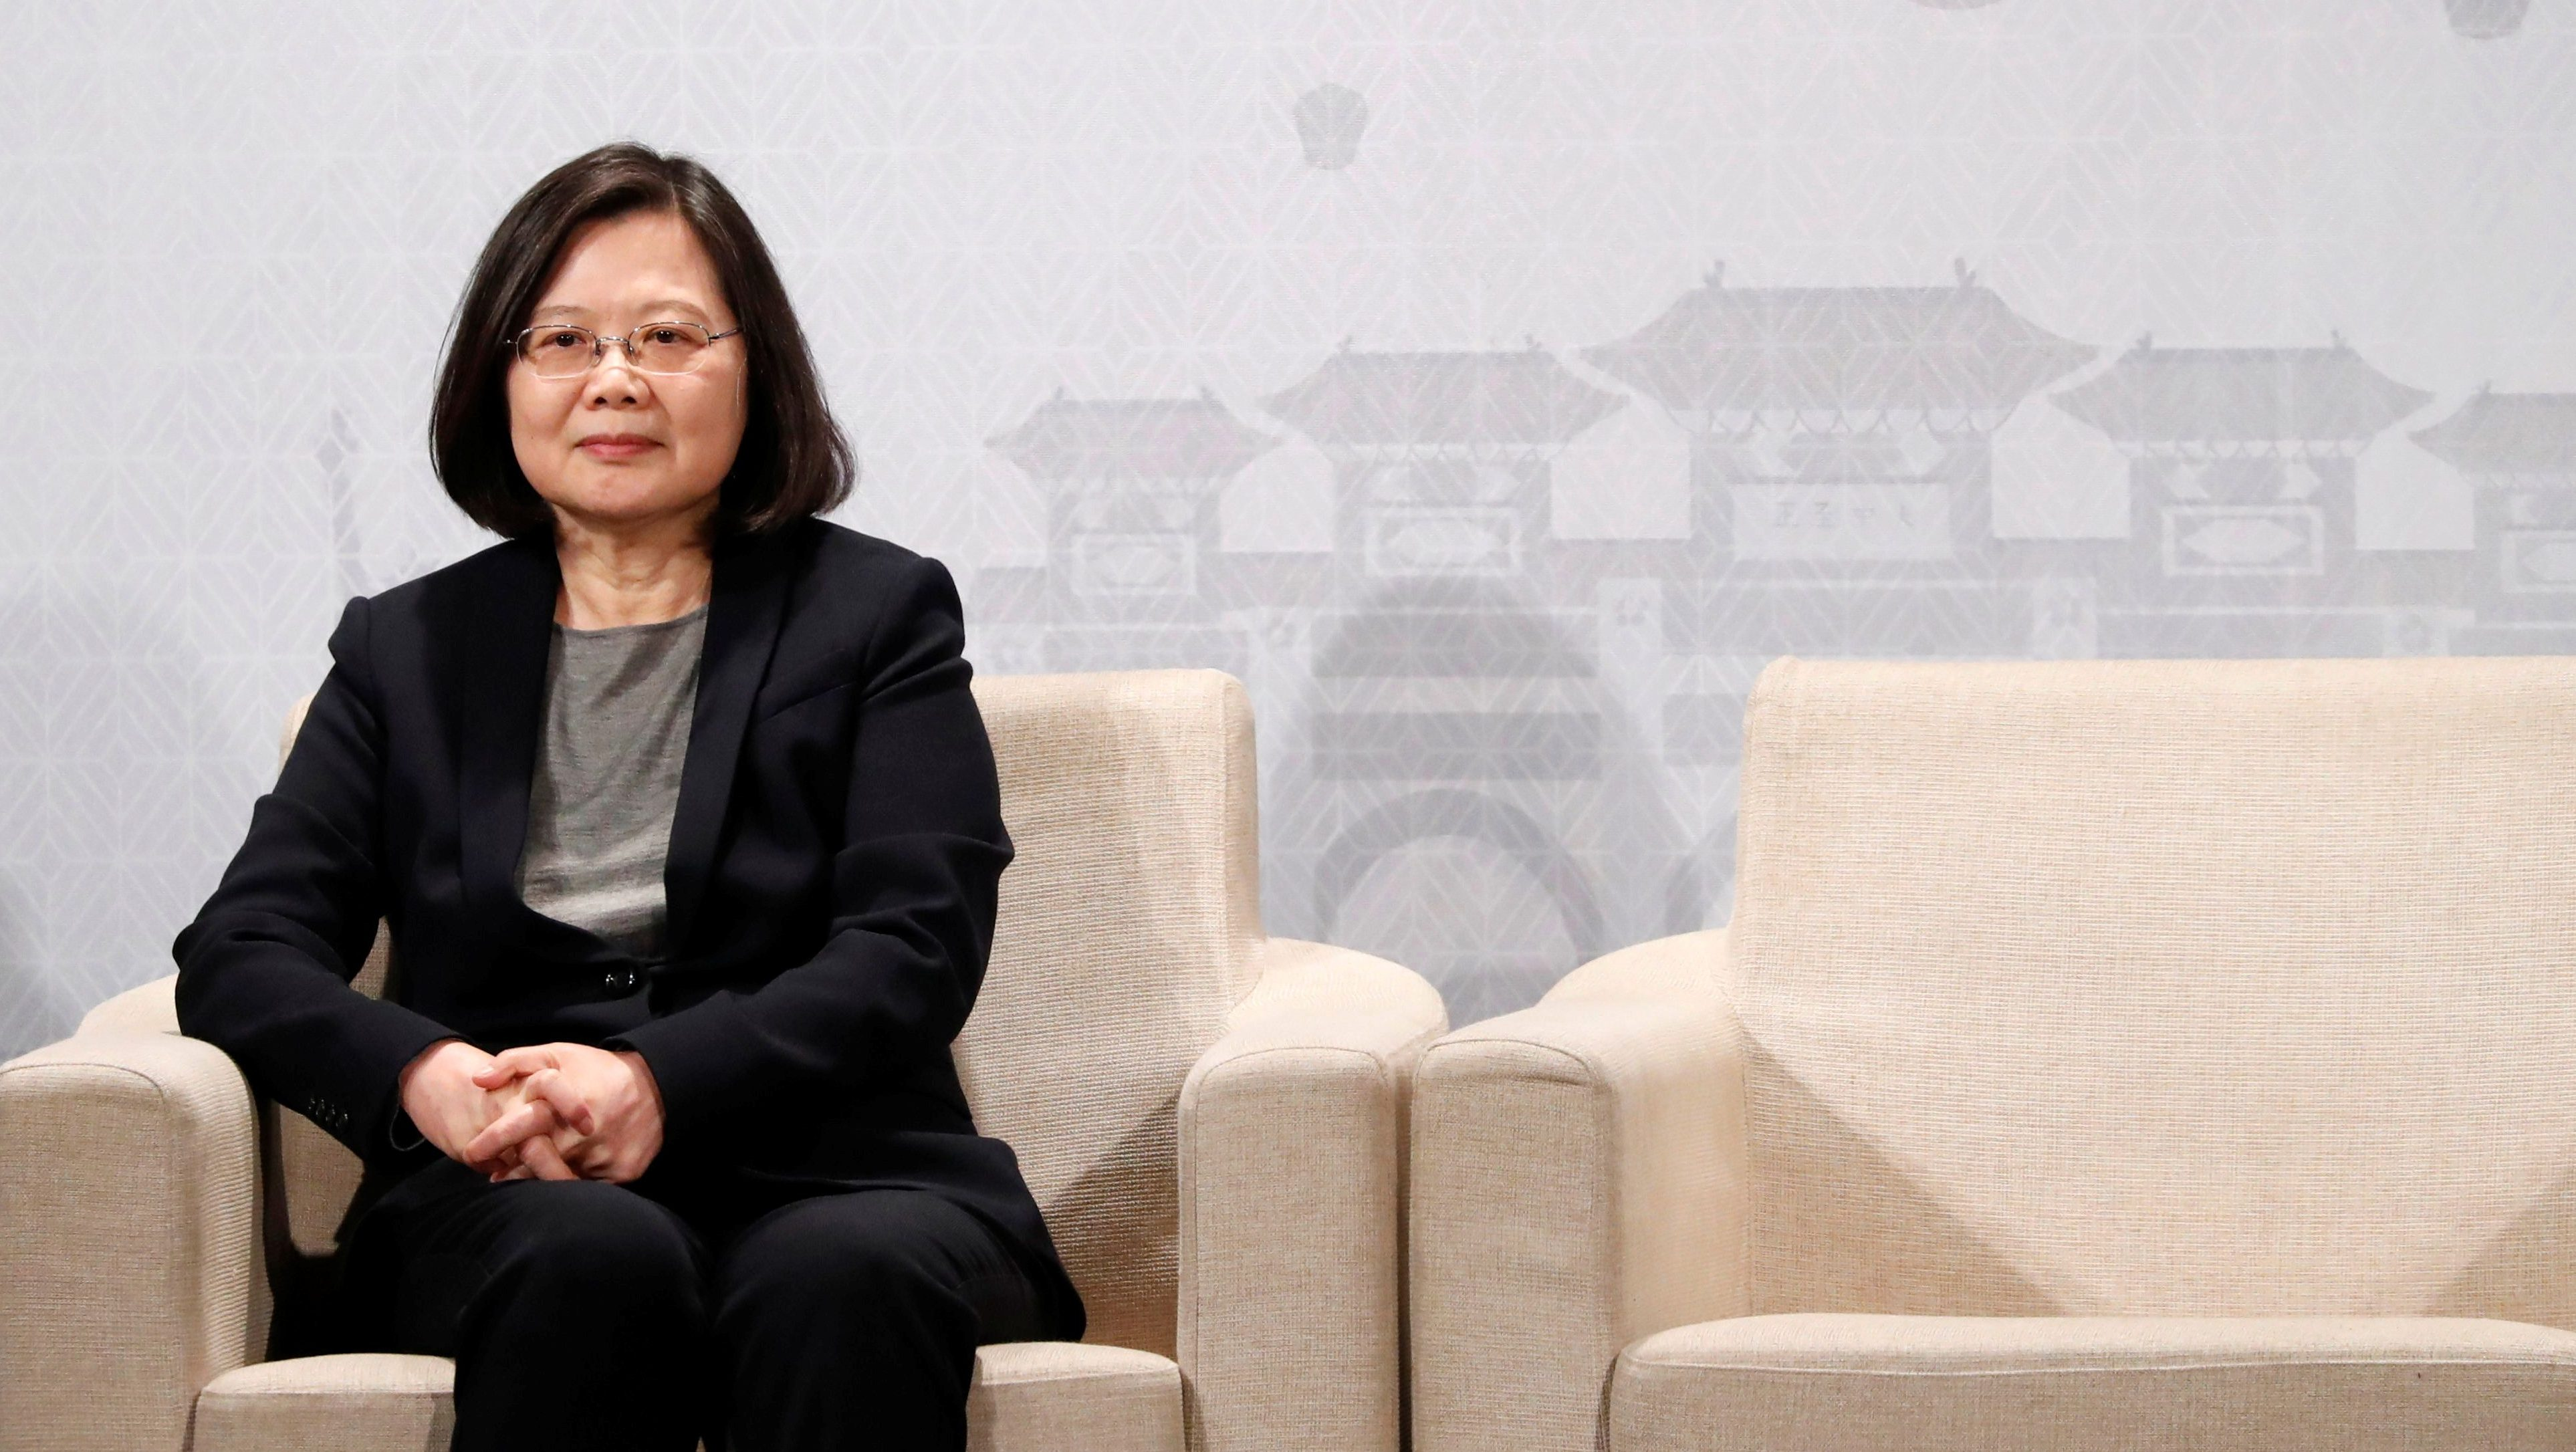 Taiwan's President Tsai Ing-wen attends American Chamber of Commerce (AmCham)'s yearly dinner event, in Taipei, Taiwan March 21, 2018.